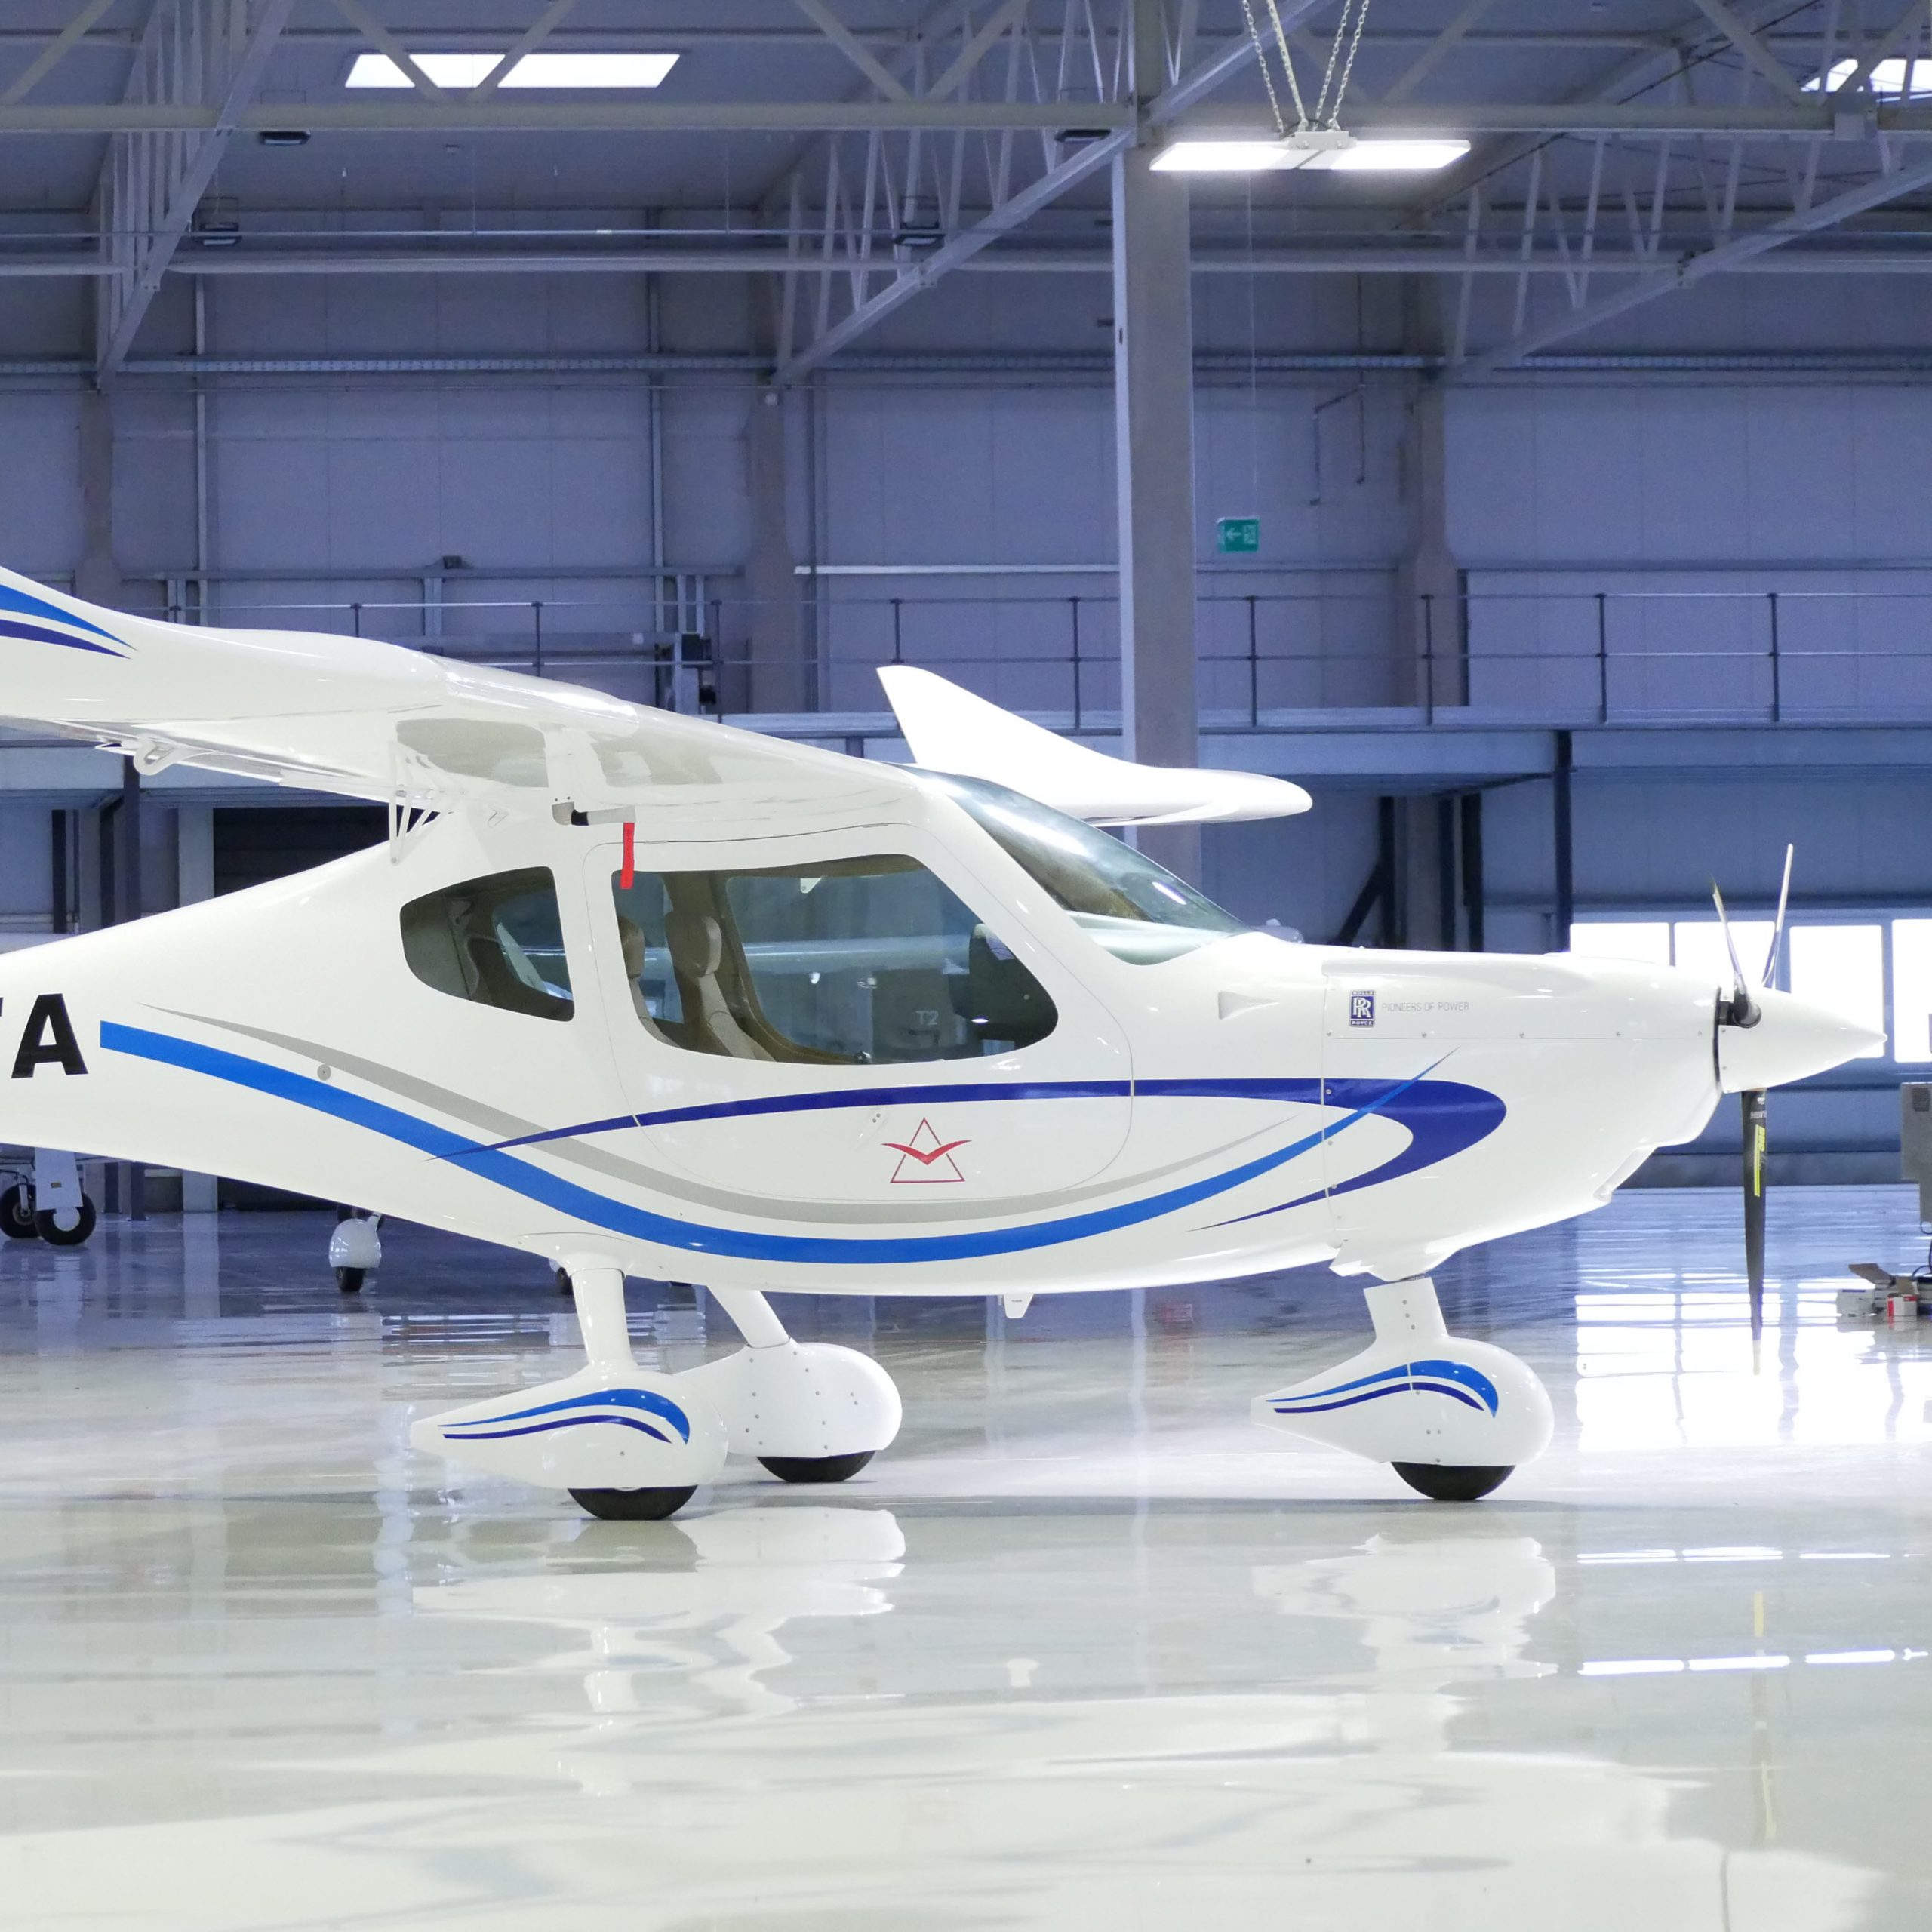 """""""HOW DO WE FLY TOMORROW?"""" THE FLIGHT DESIGN INTERVIEW"""